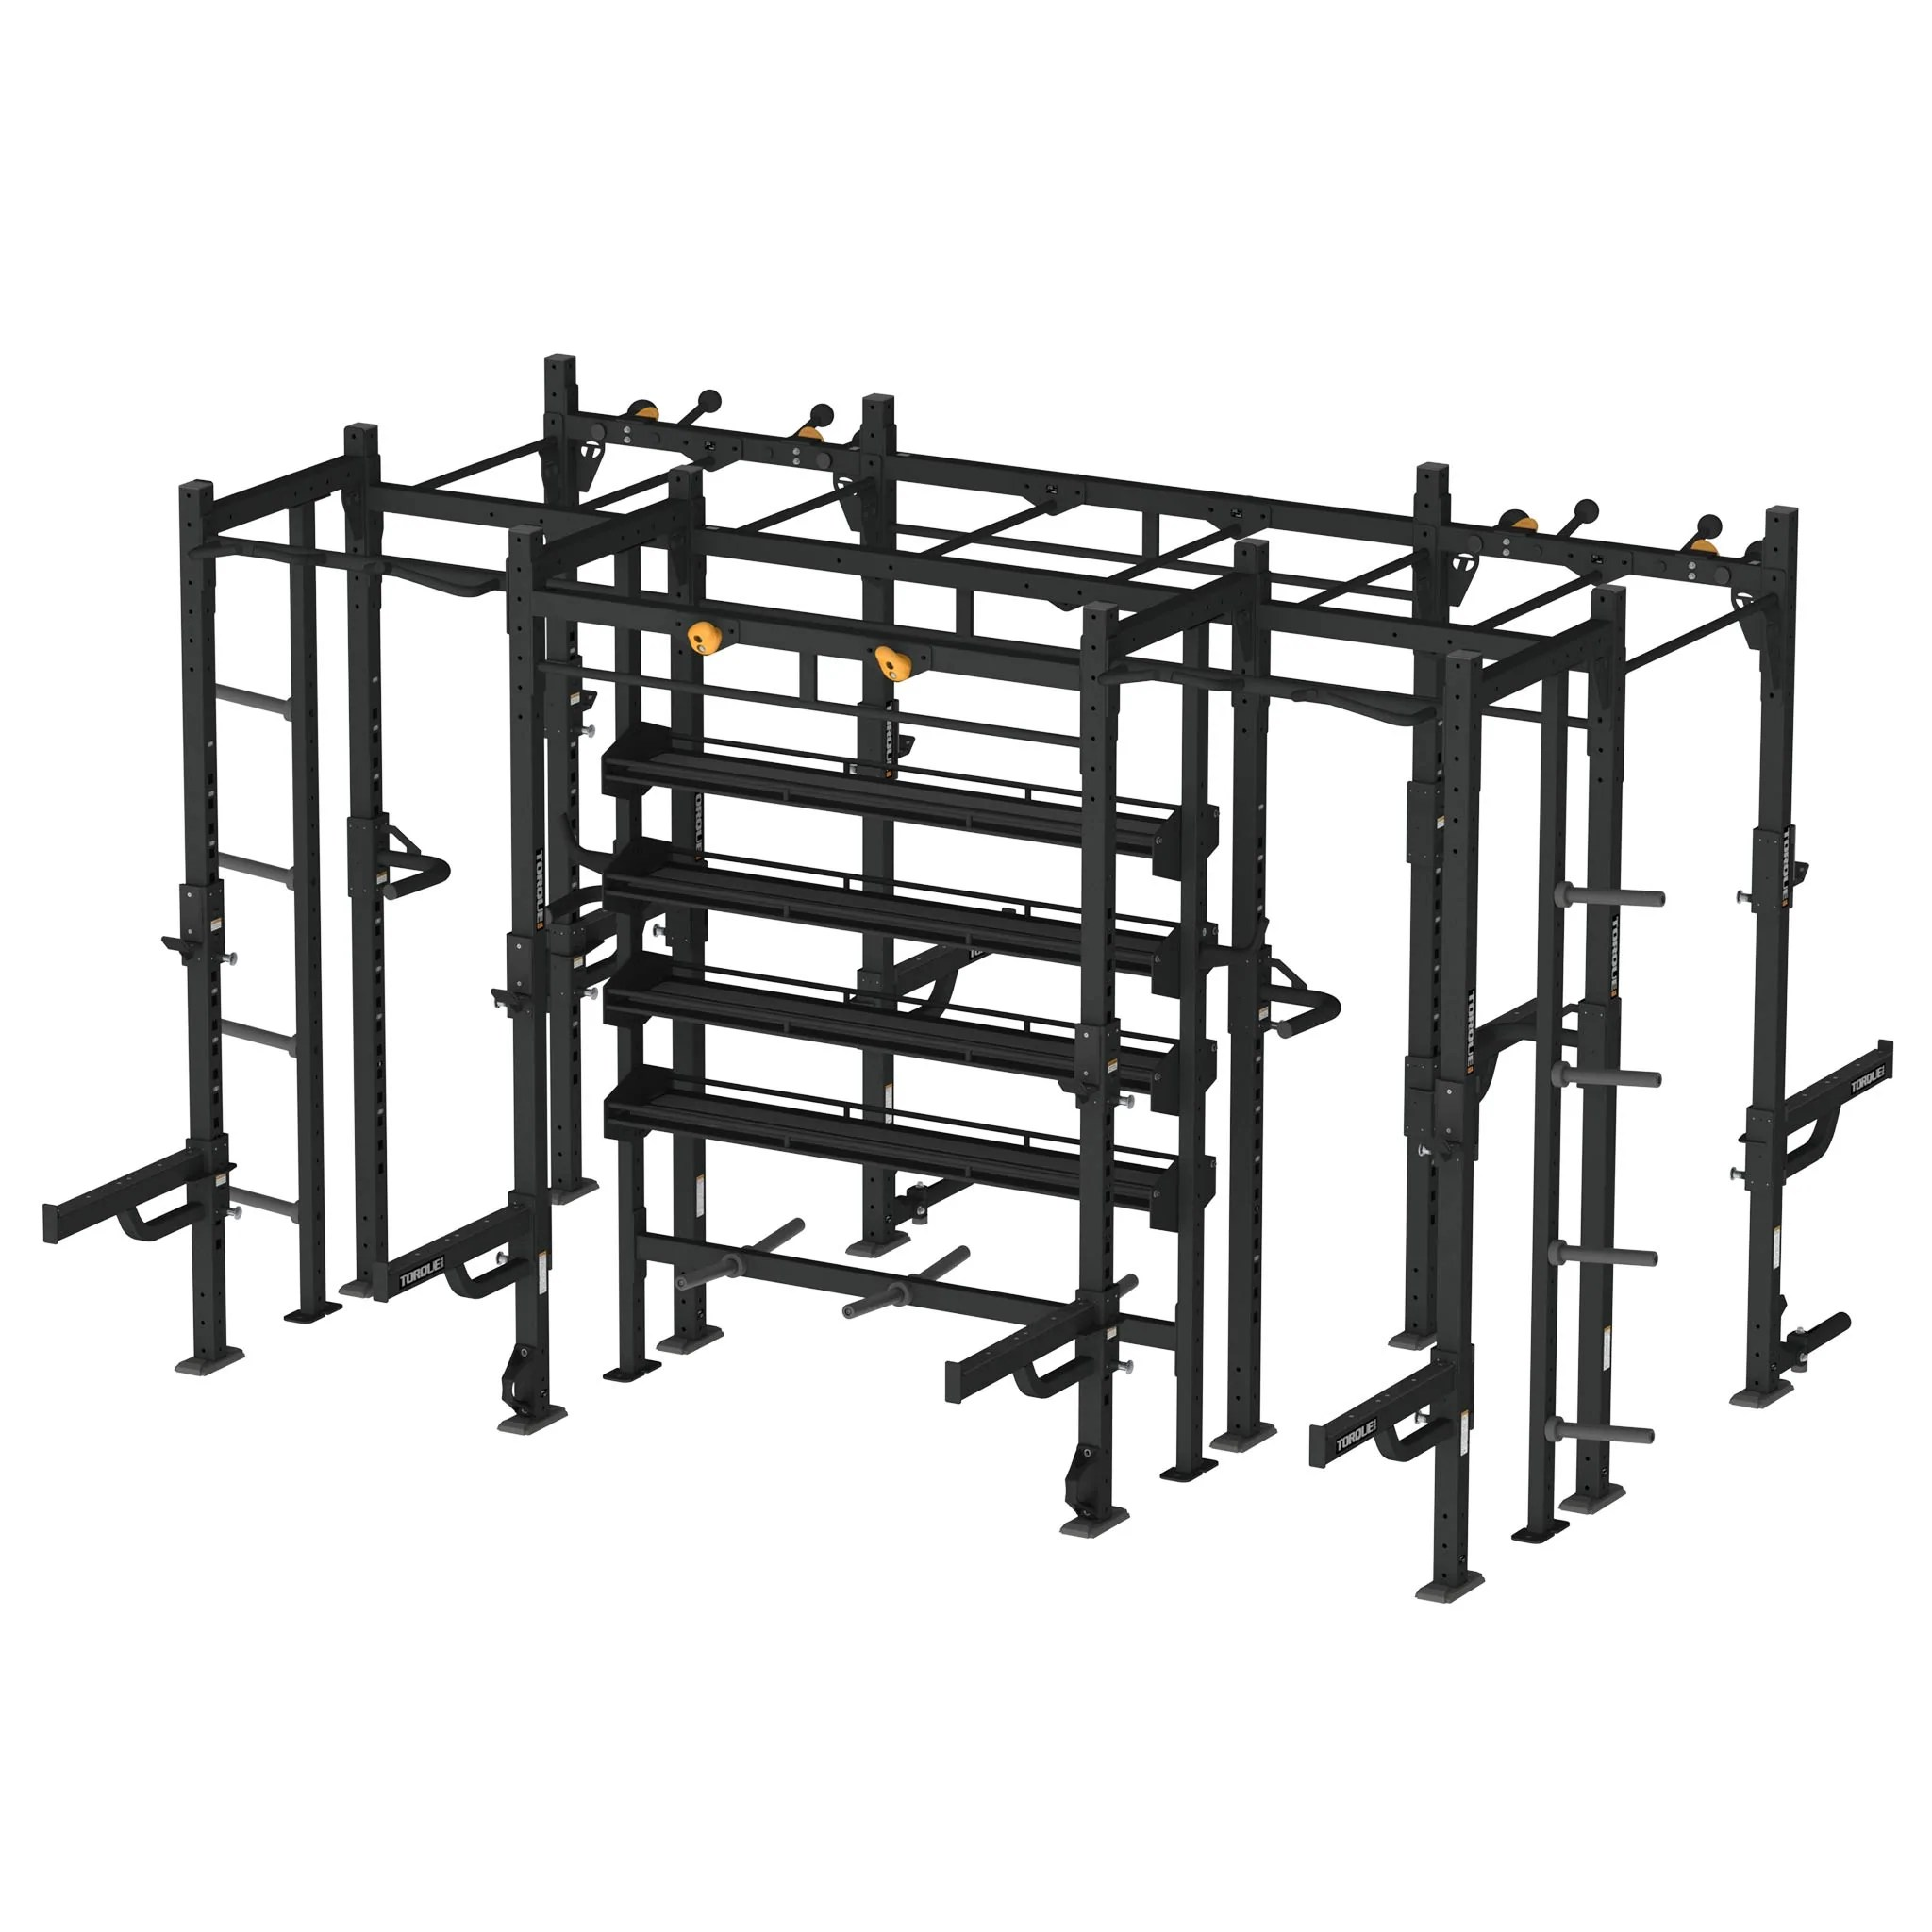 Monkey Bar 14 X 7 Monkey Bar Storage X1 Package Torque Fitness